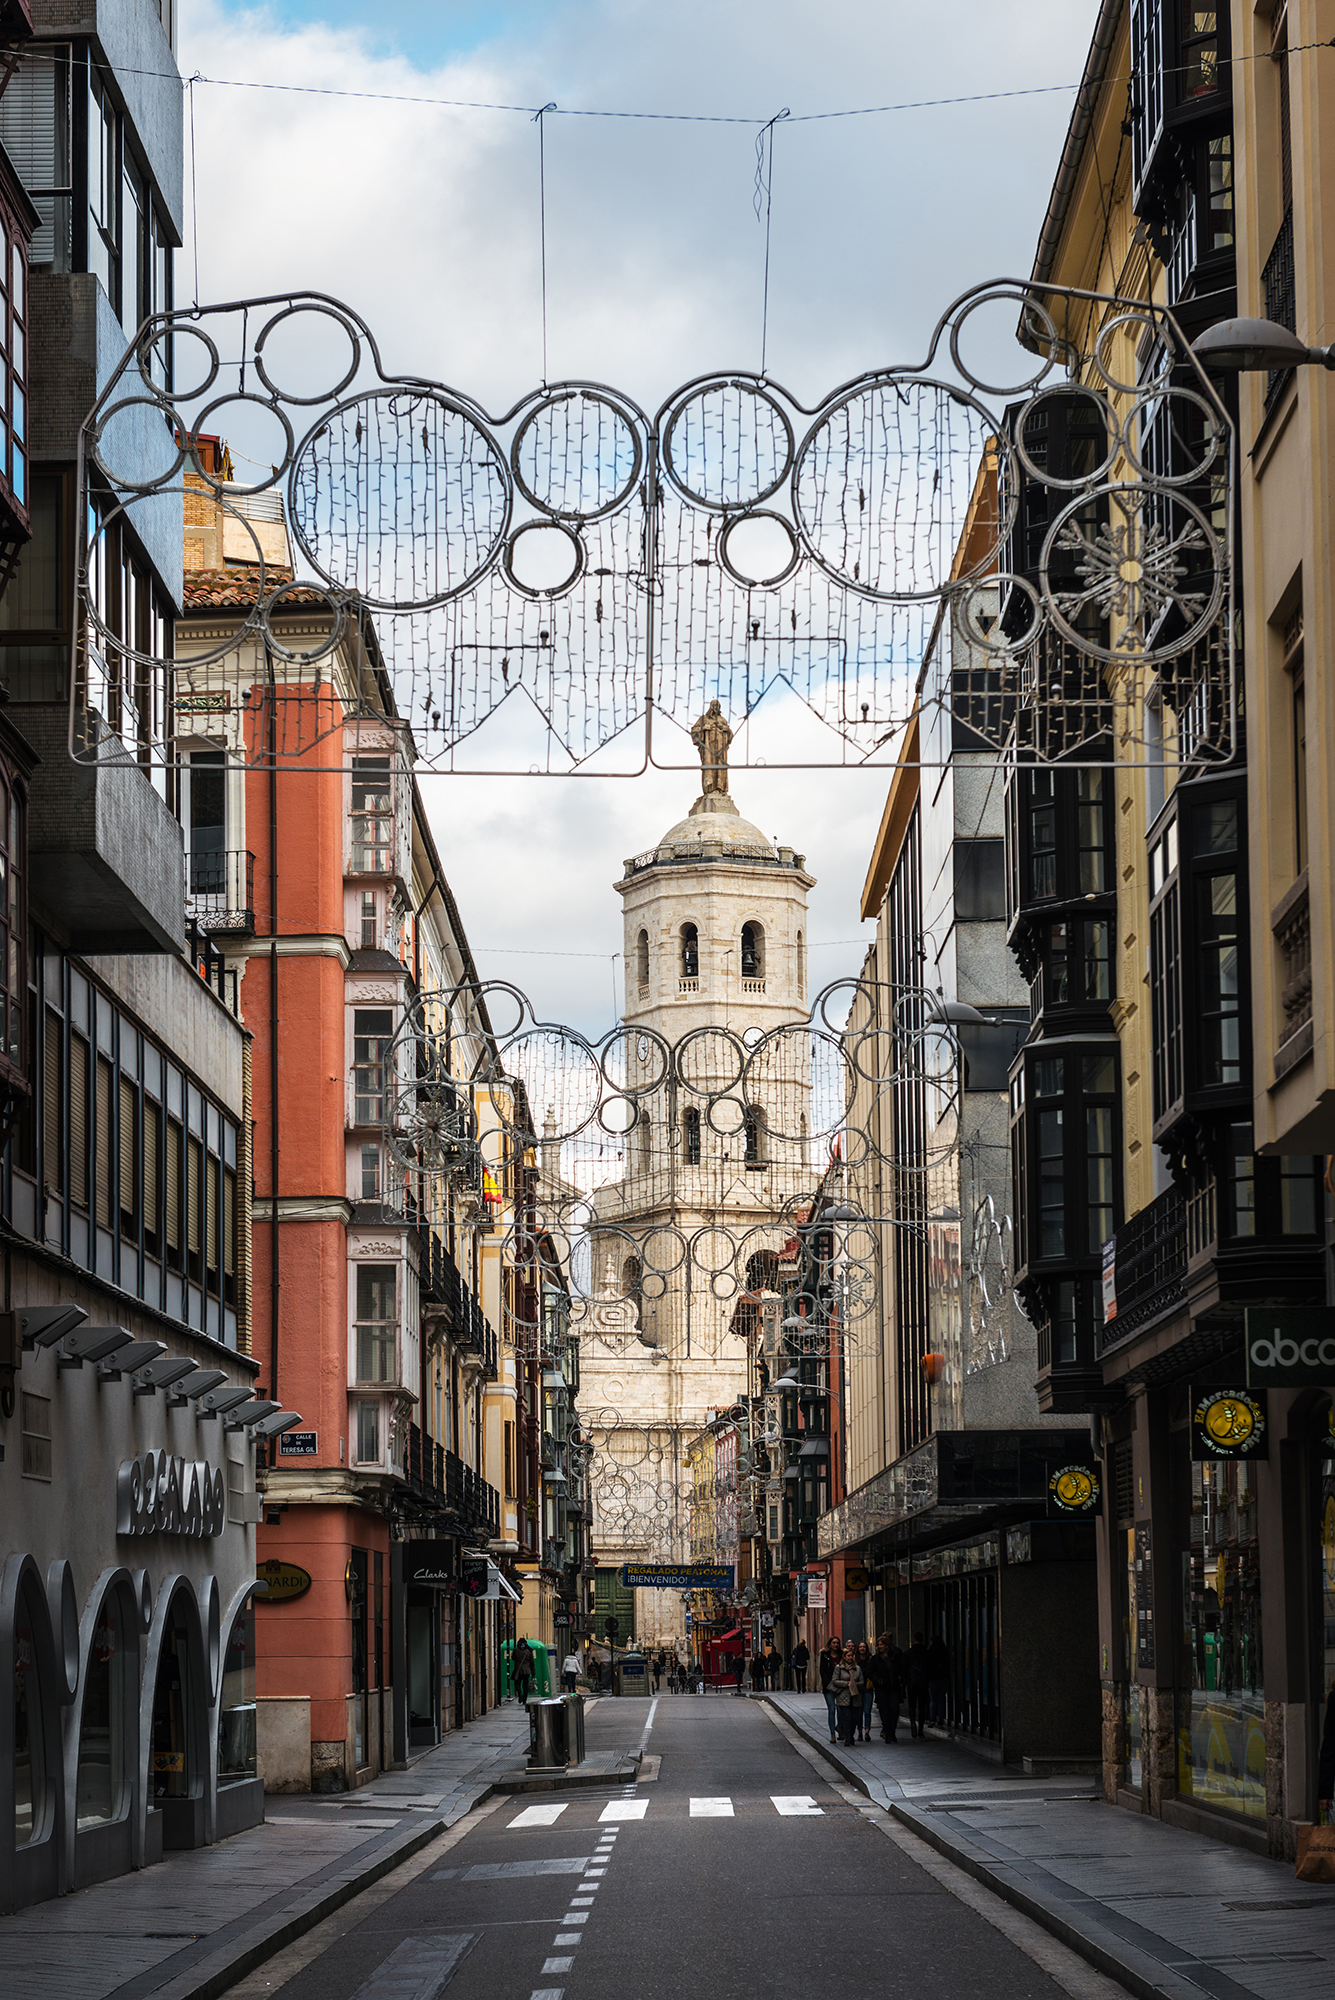 Tower of Valladolid's Cathedral as seen through the narrow streets in the city center